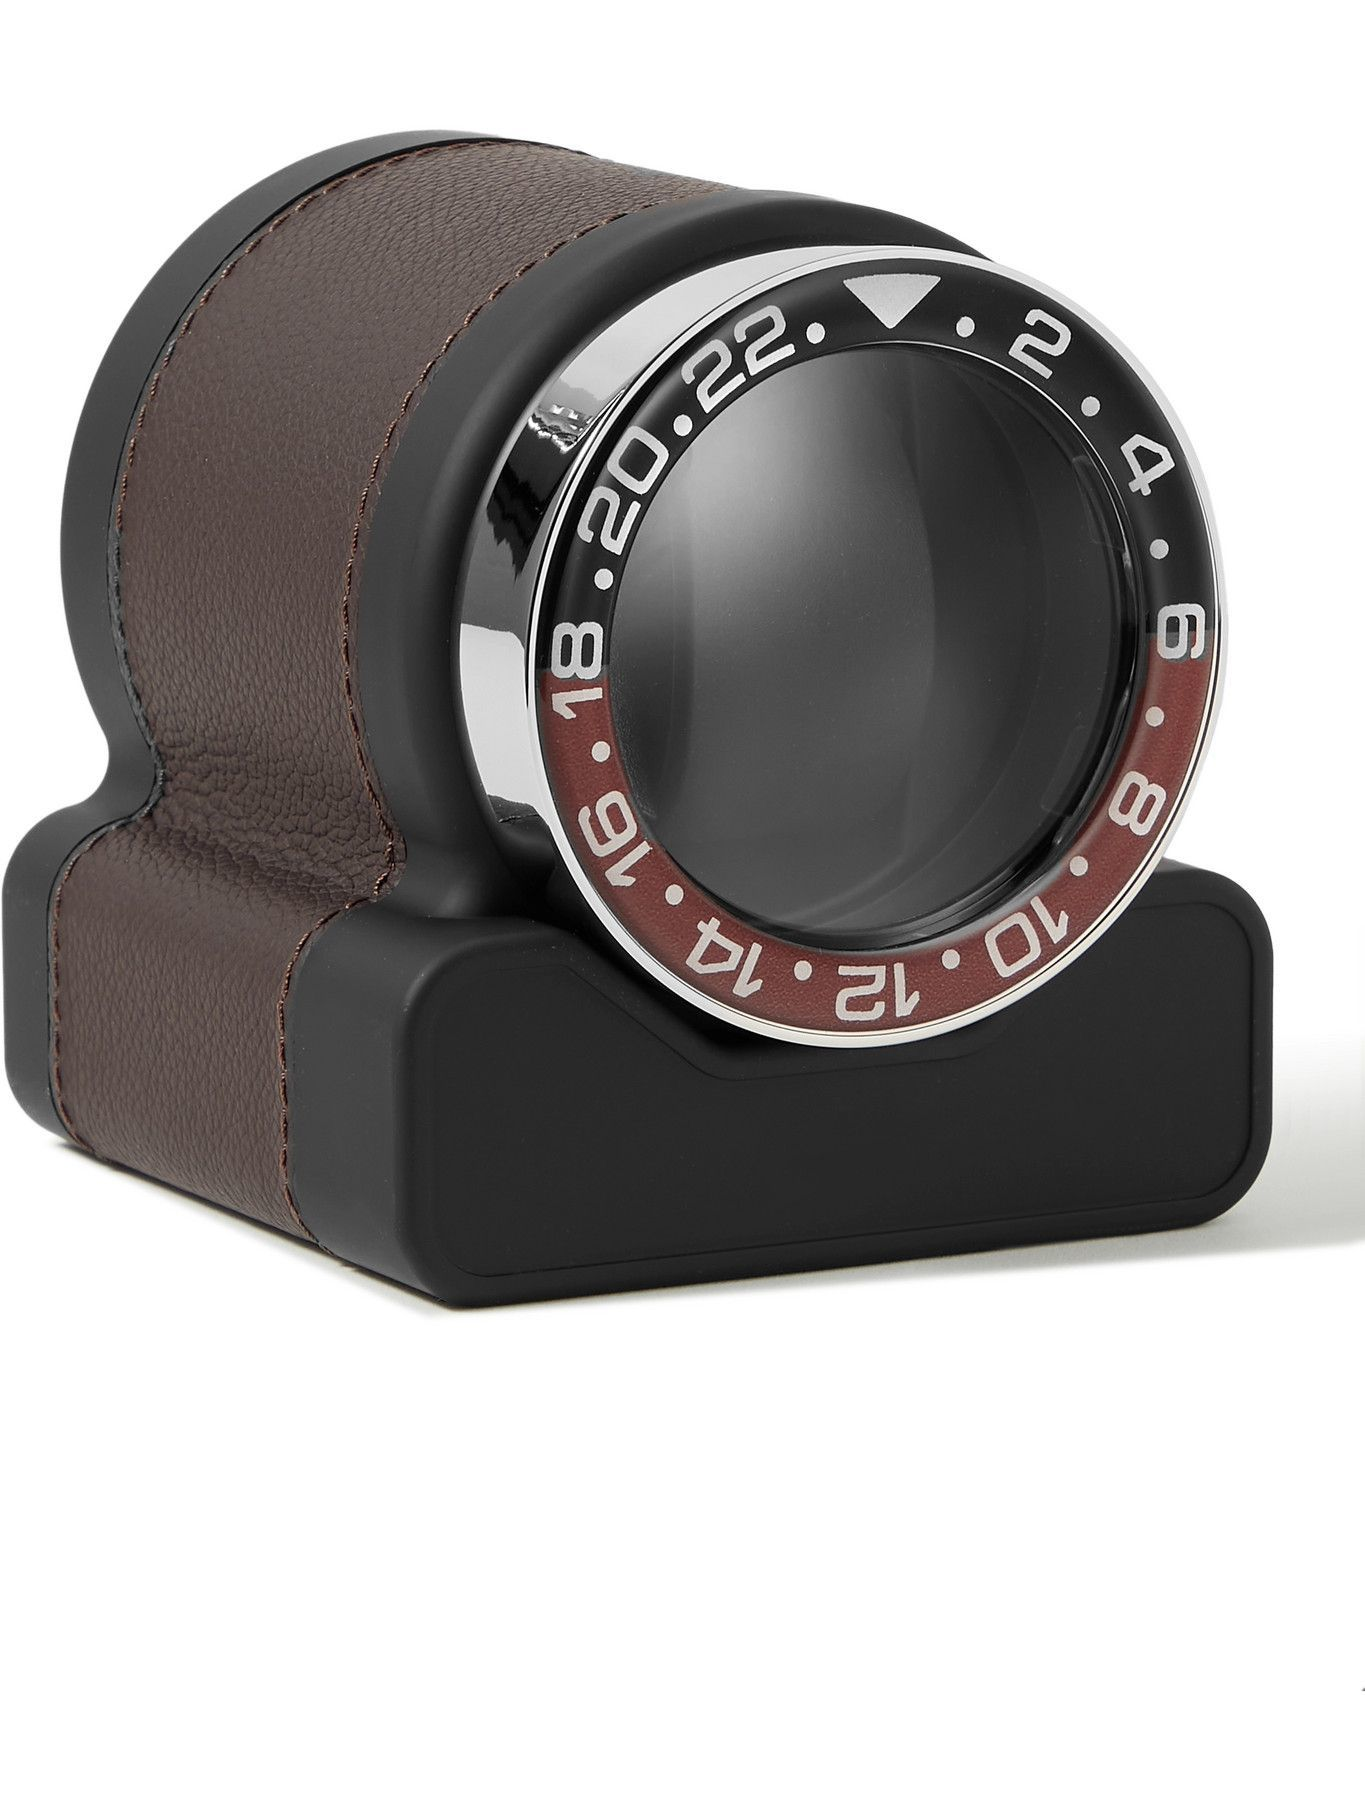 Scatola del Tempo - Rotor One Sport Leather Watch Winder